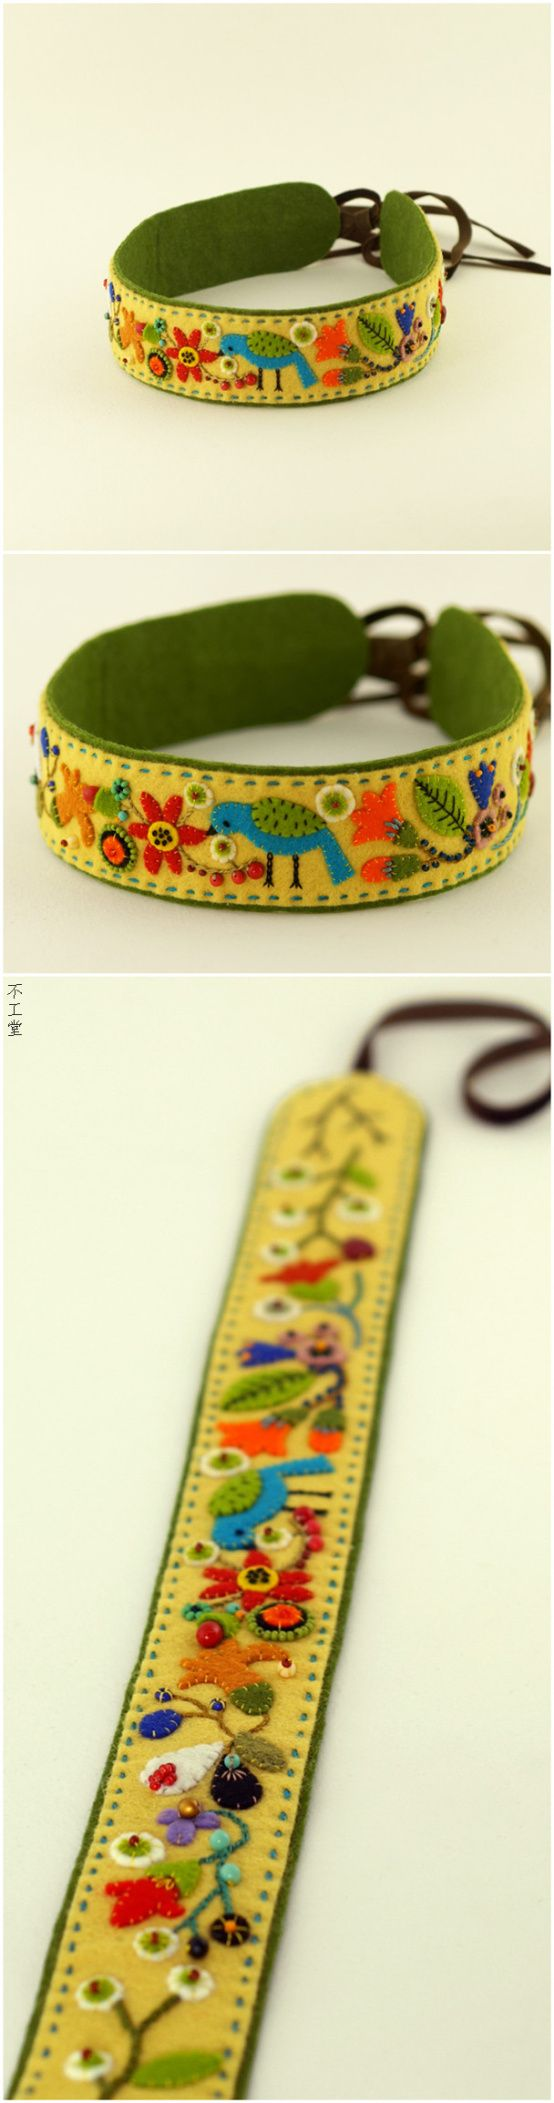 Felt wristlet. Love the details in the embroidery.                                                                                                                                                                                 Más